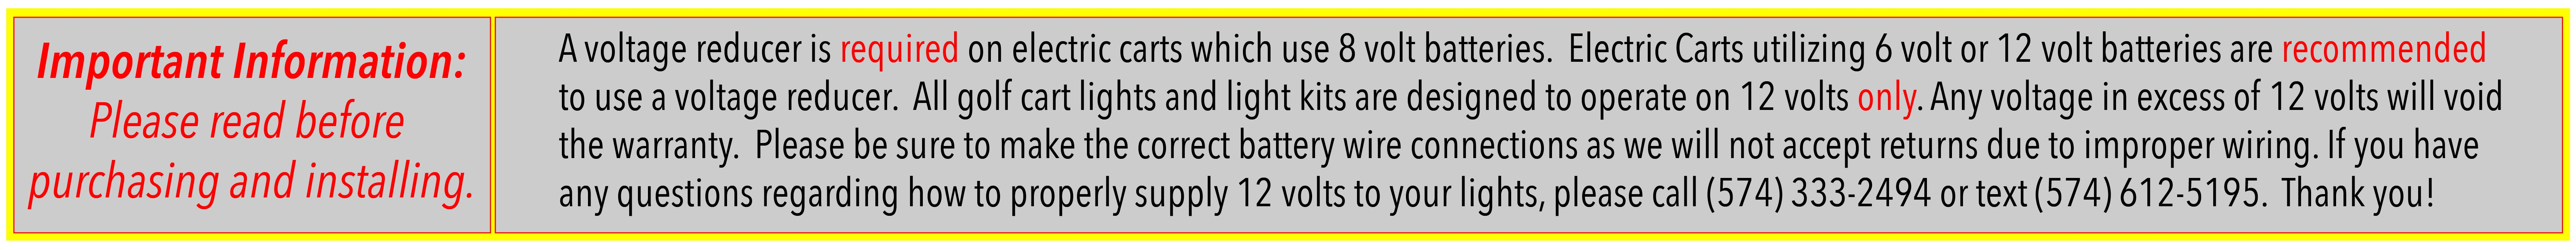 Warning label for 12 volt only light kit.